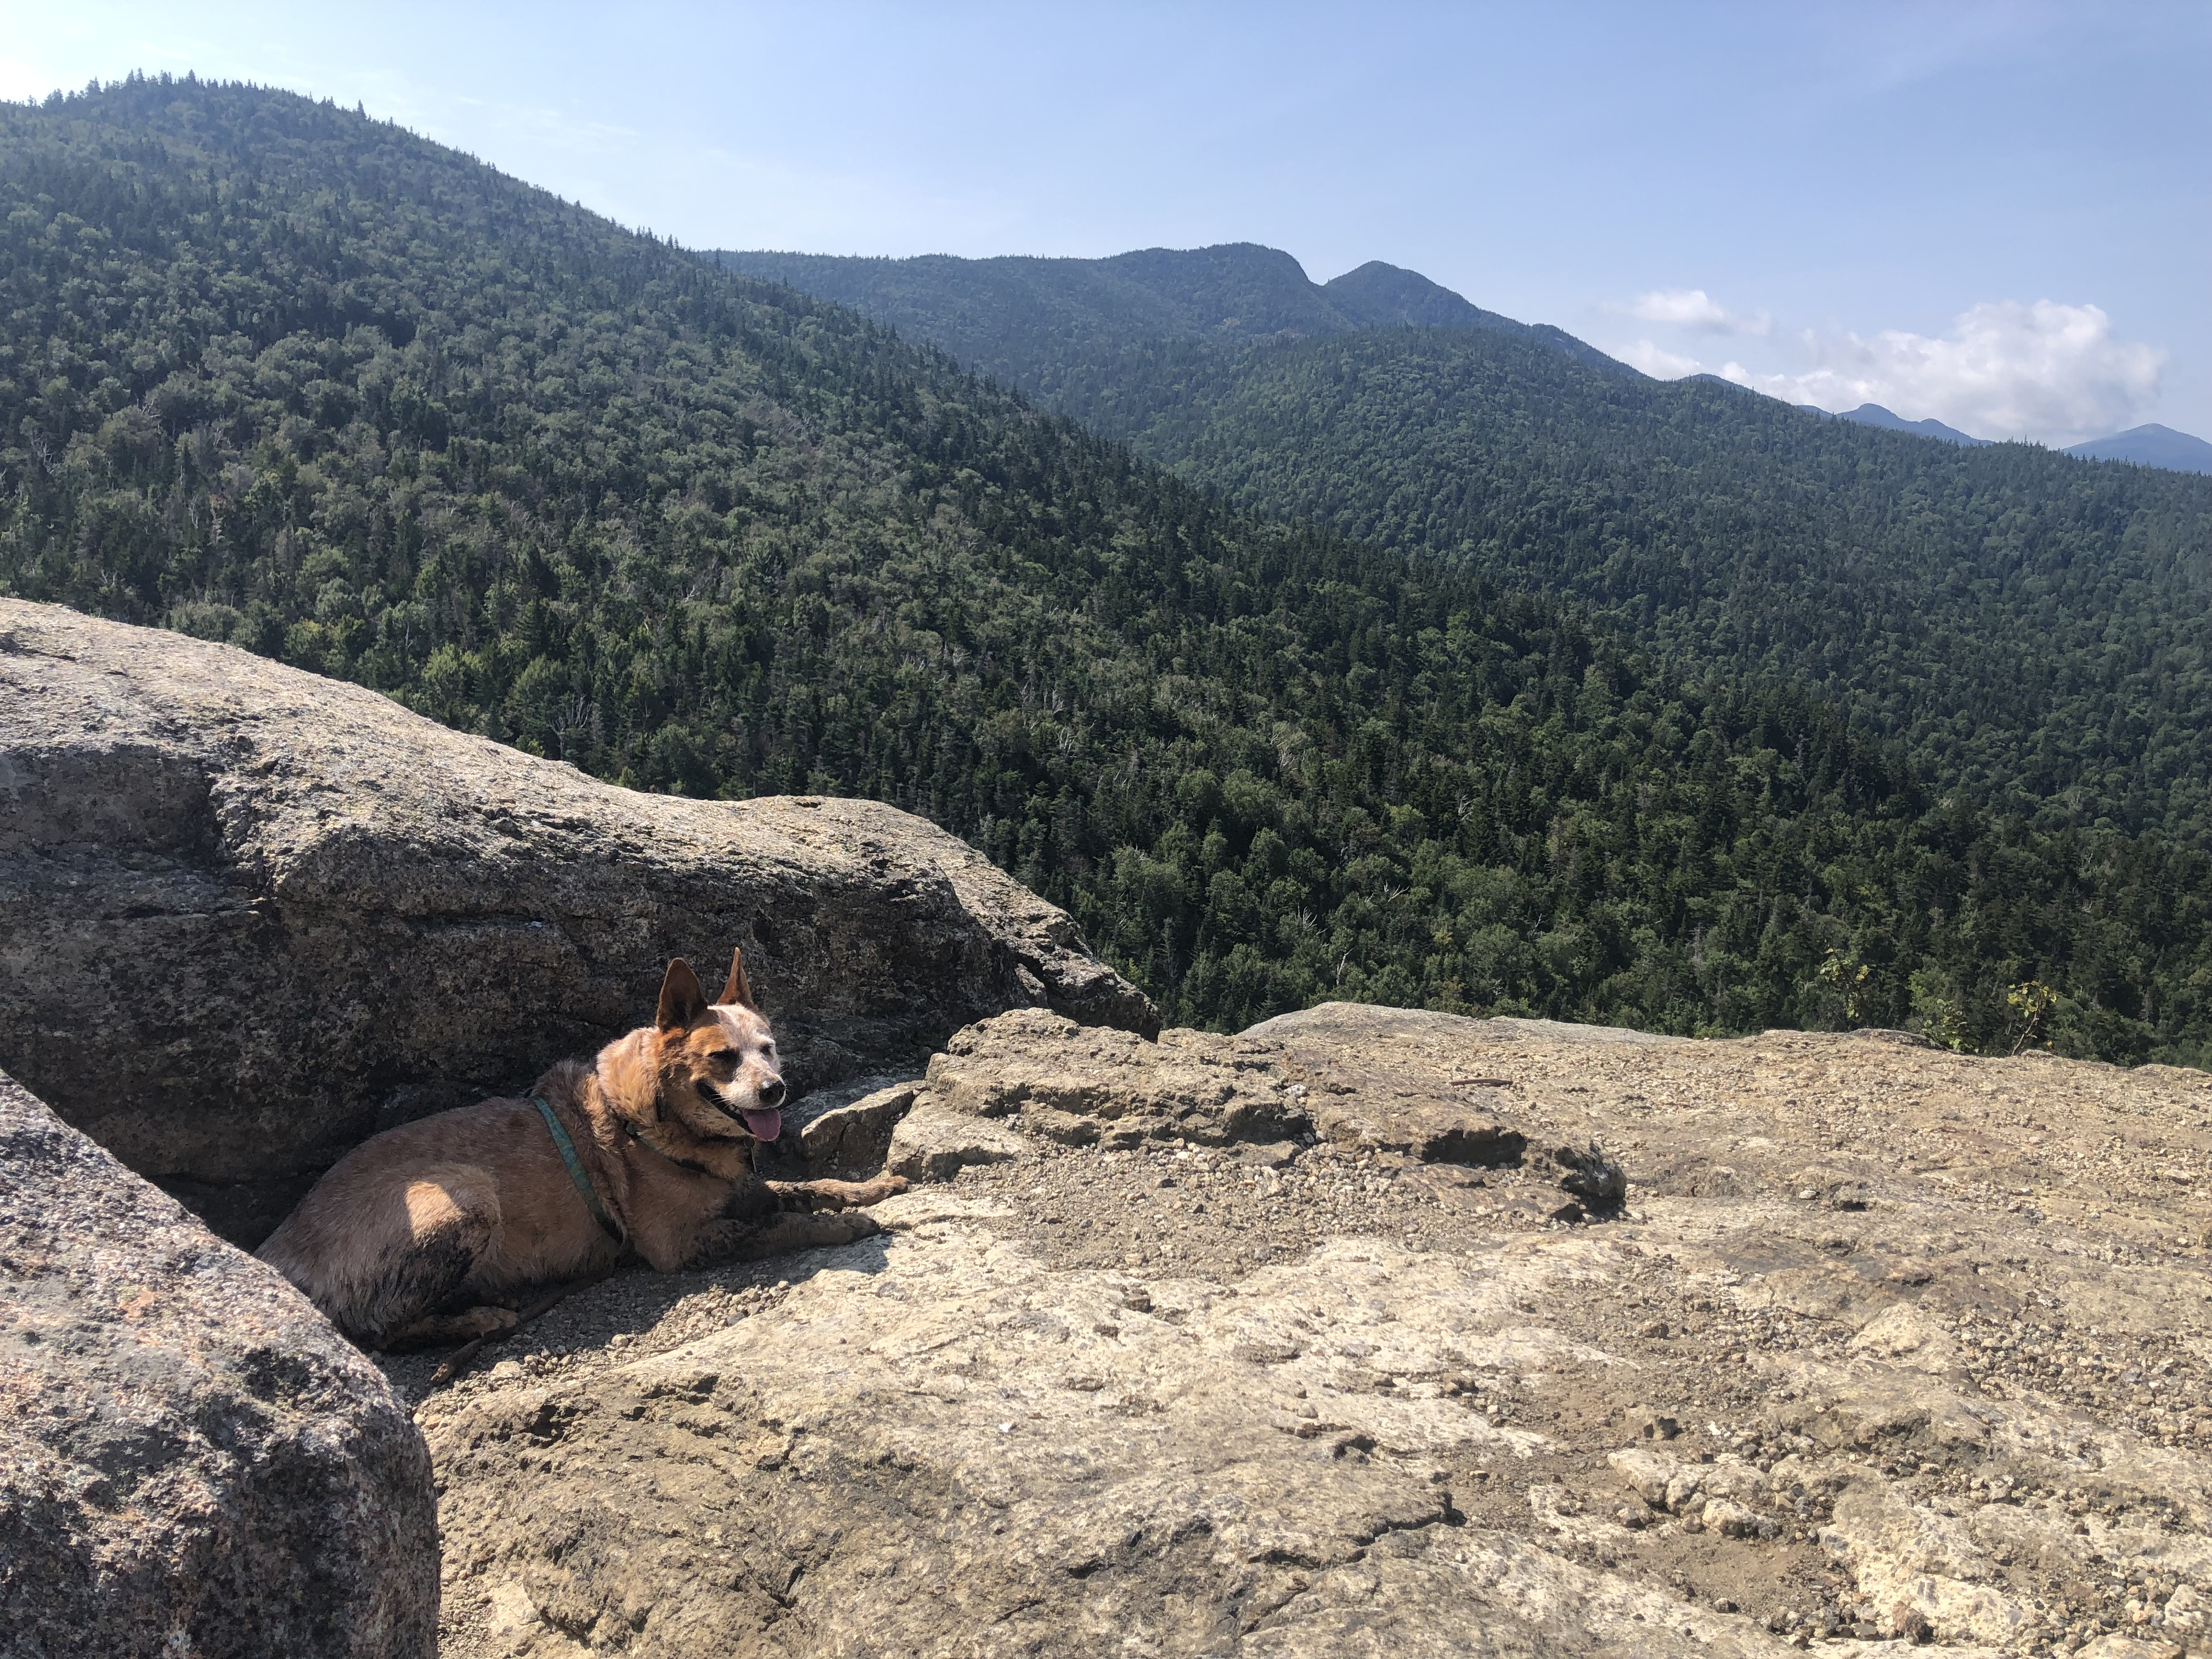 Dog resting in shade of rock on summit with mountain views